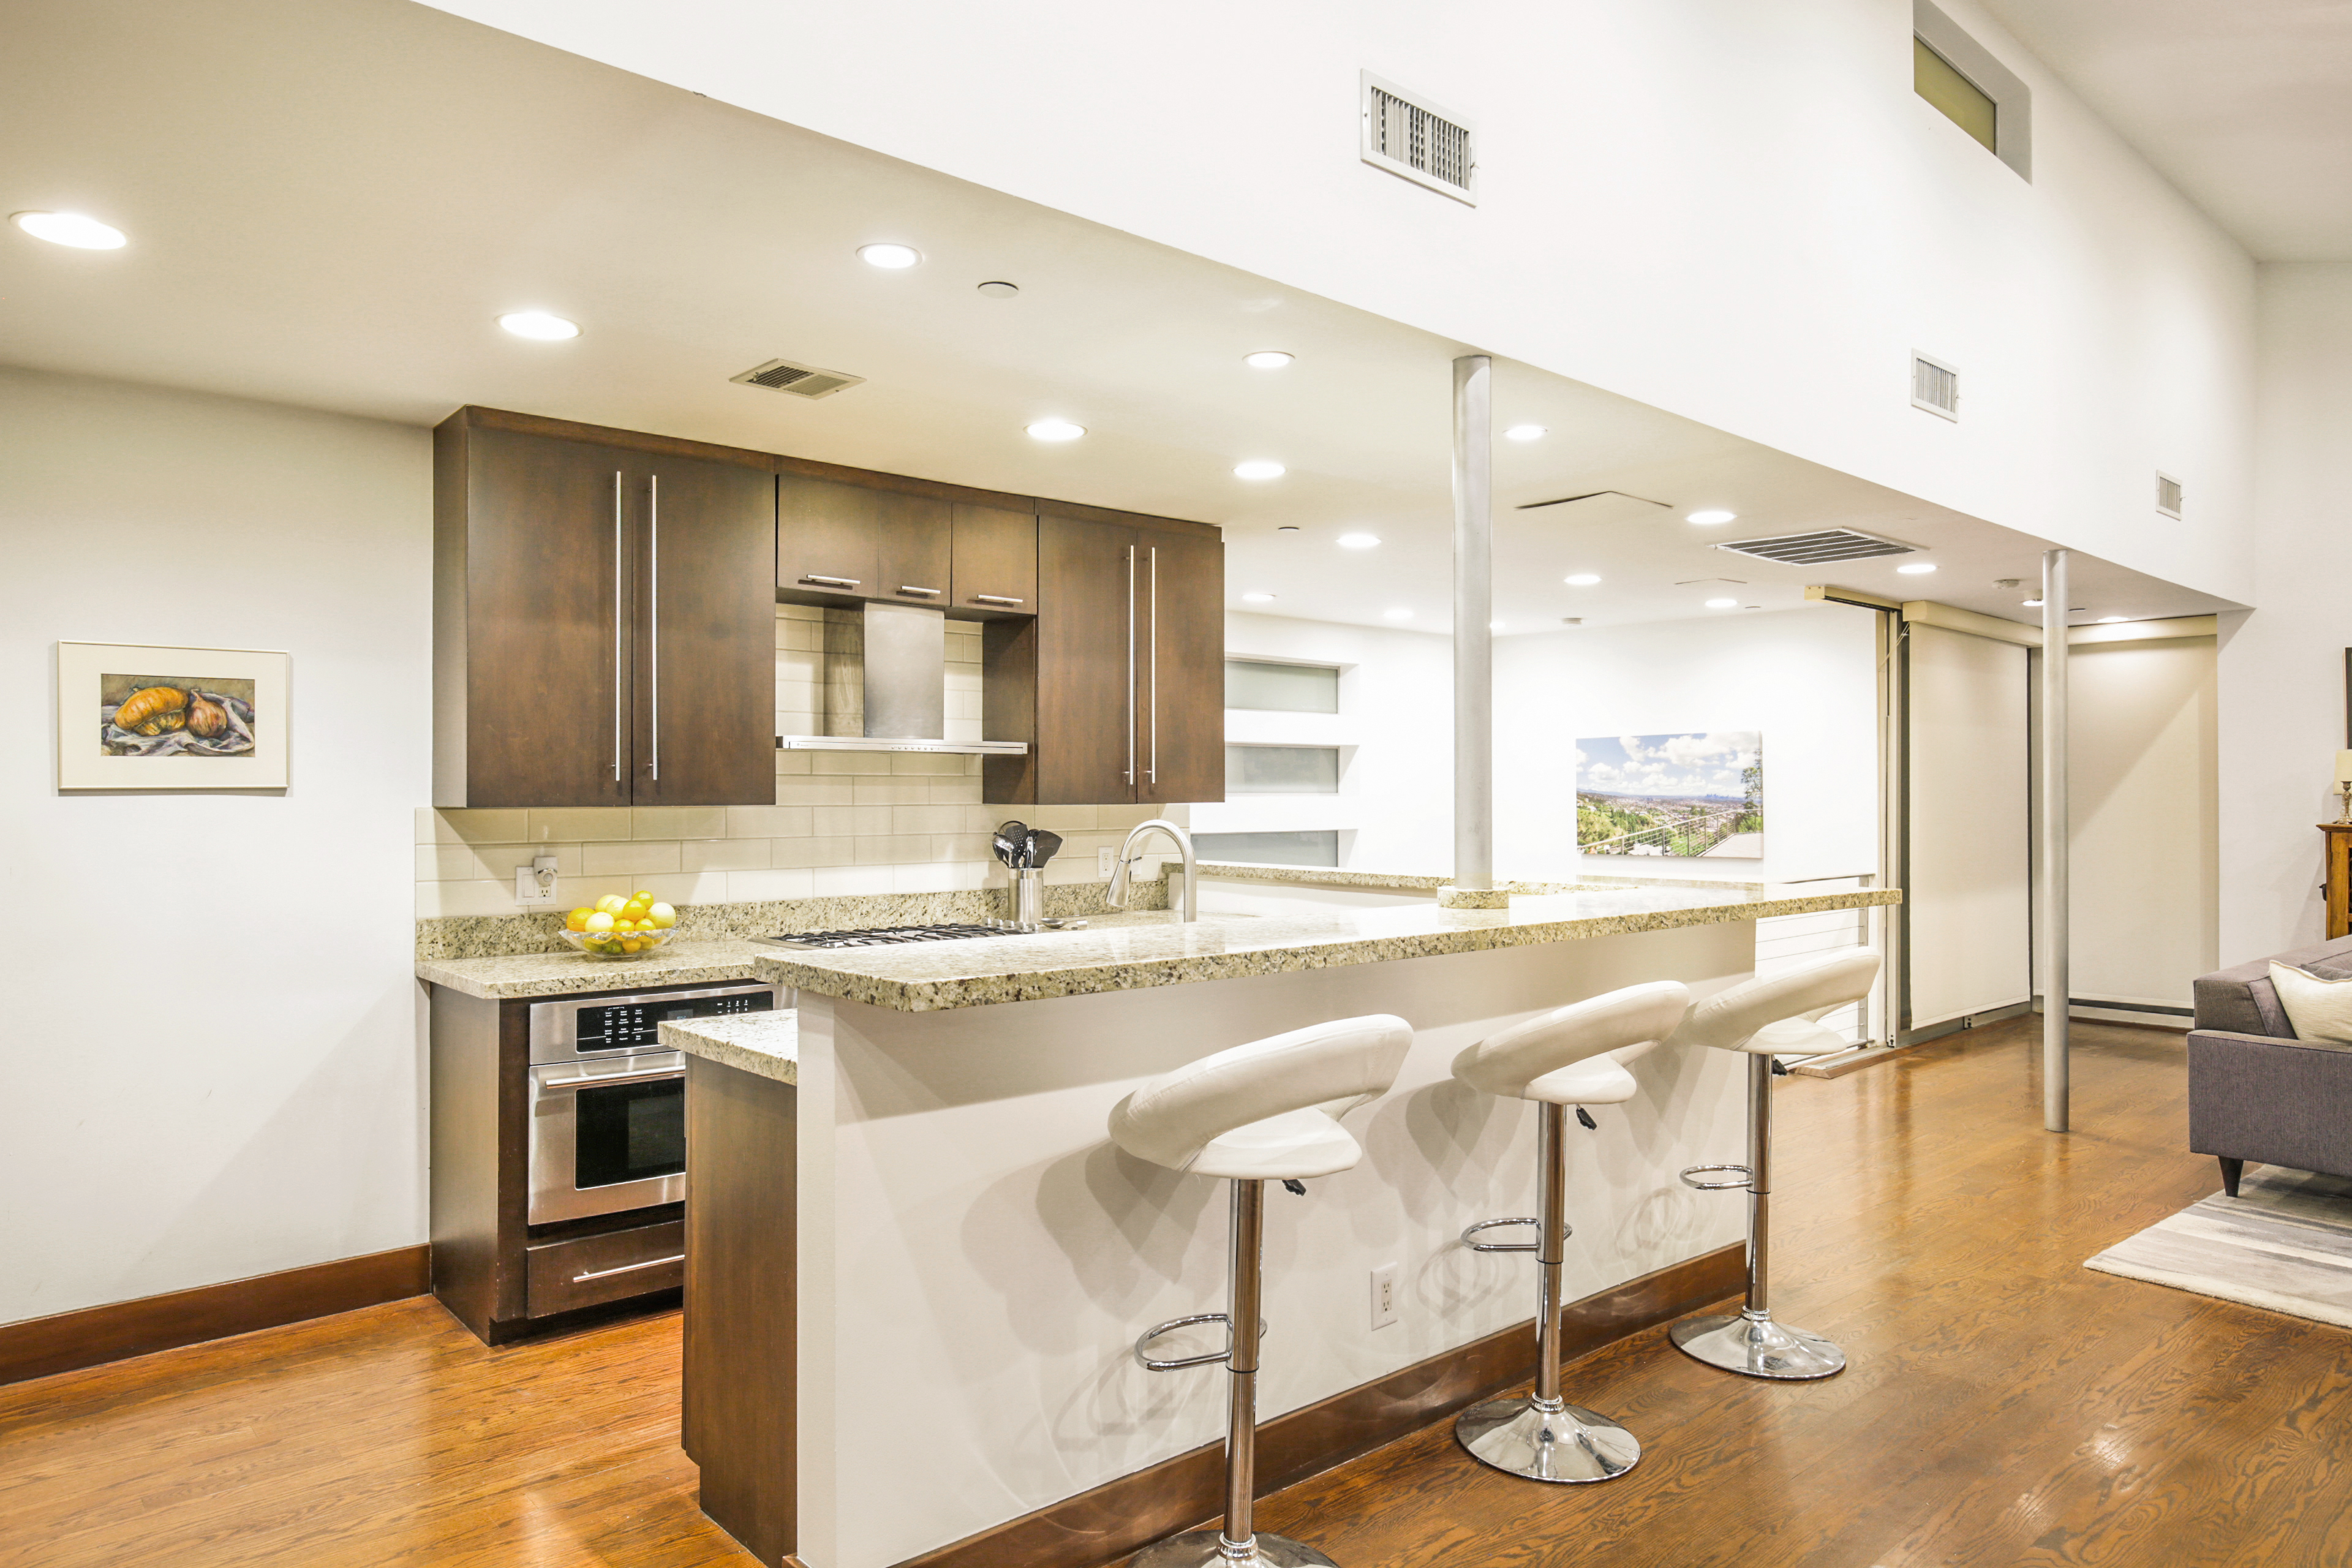 West Hollywood hills home with jetliner views of downtown, Griffith ...